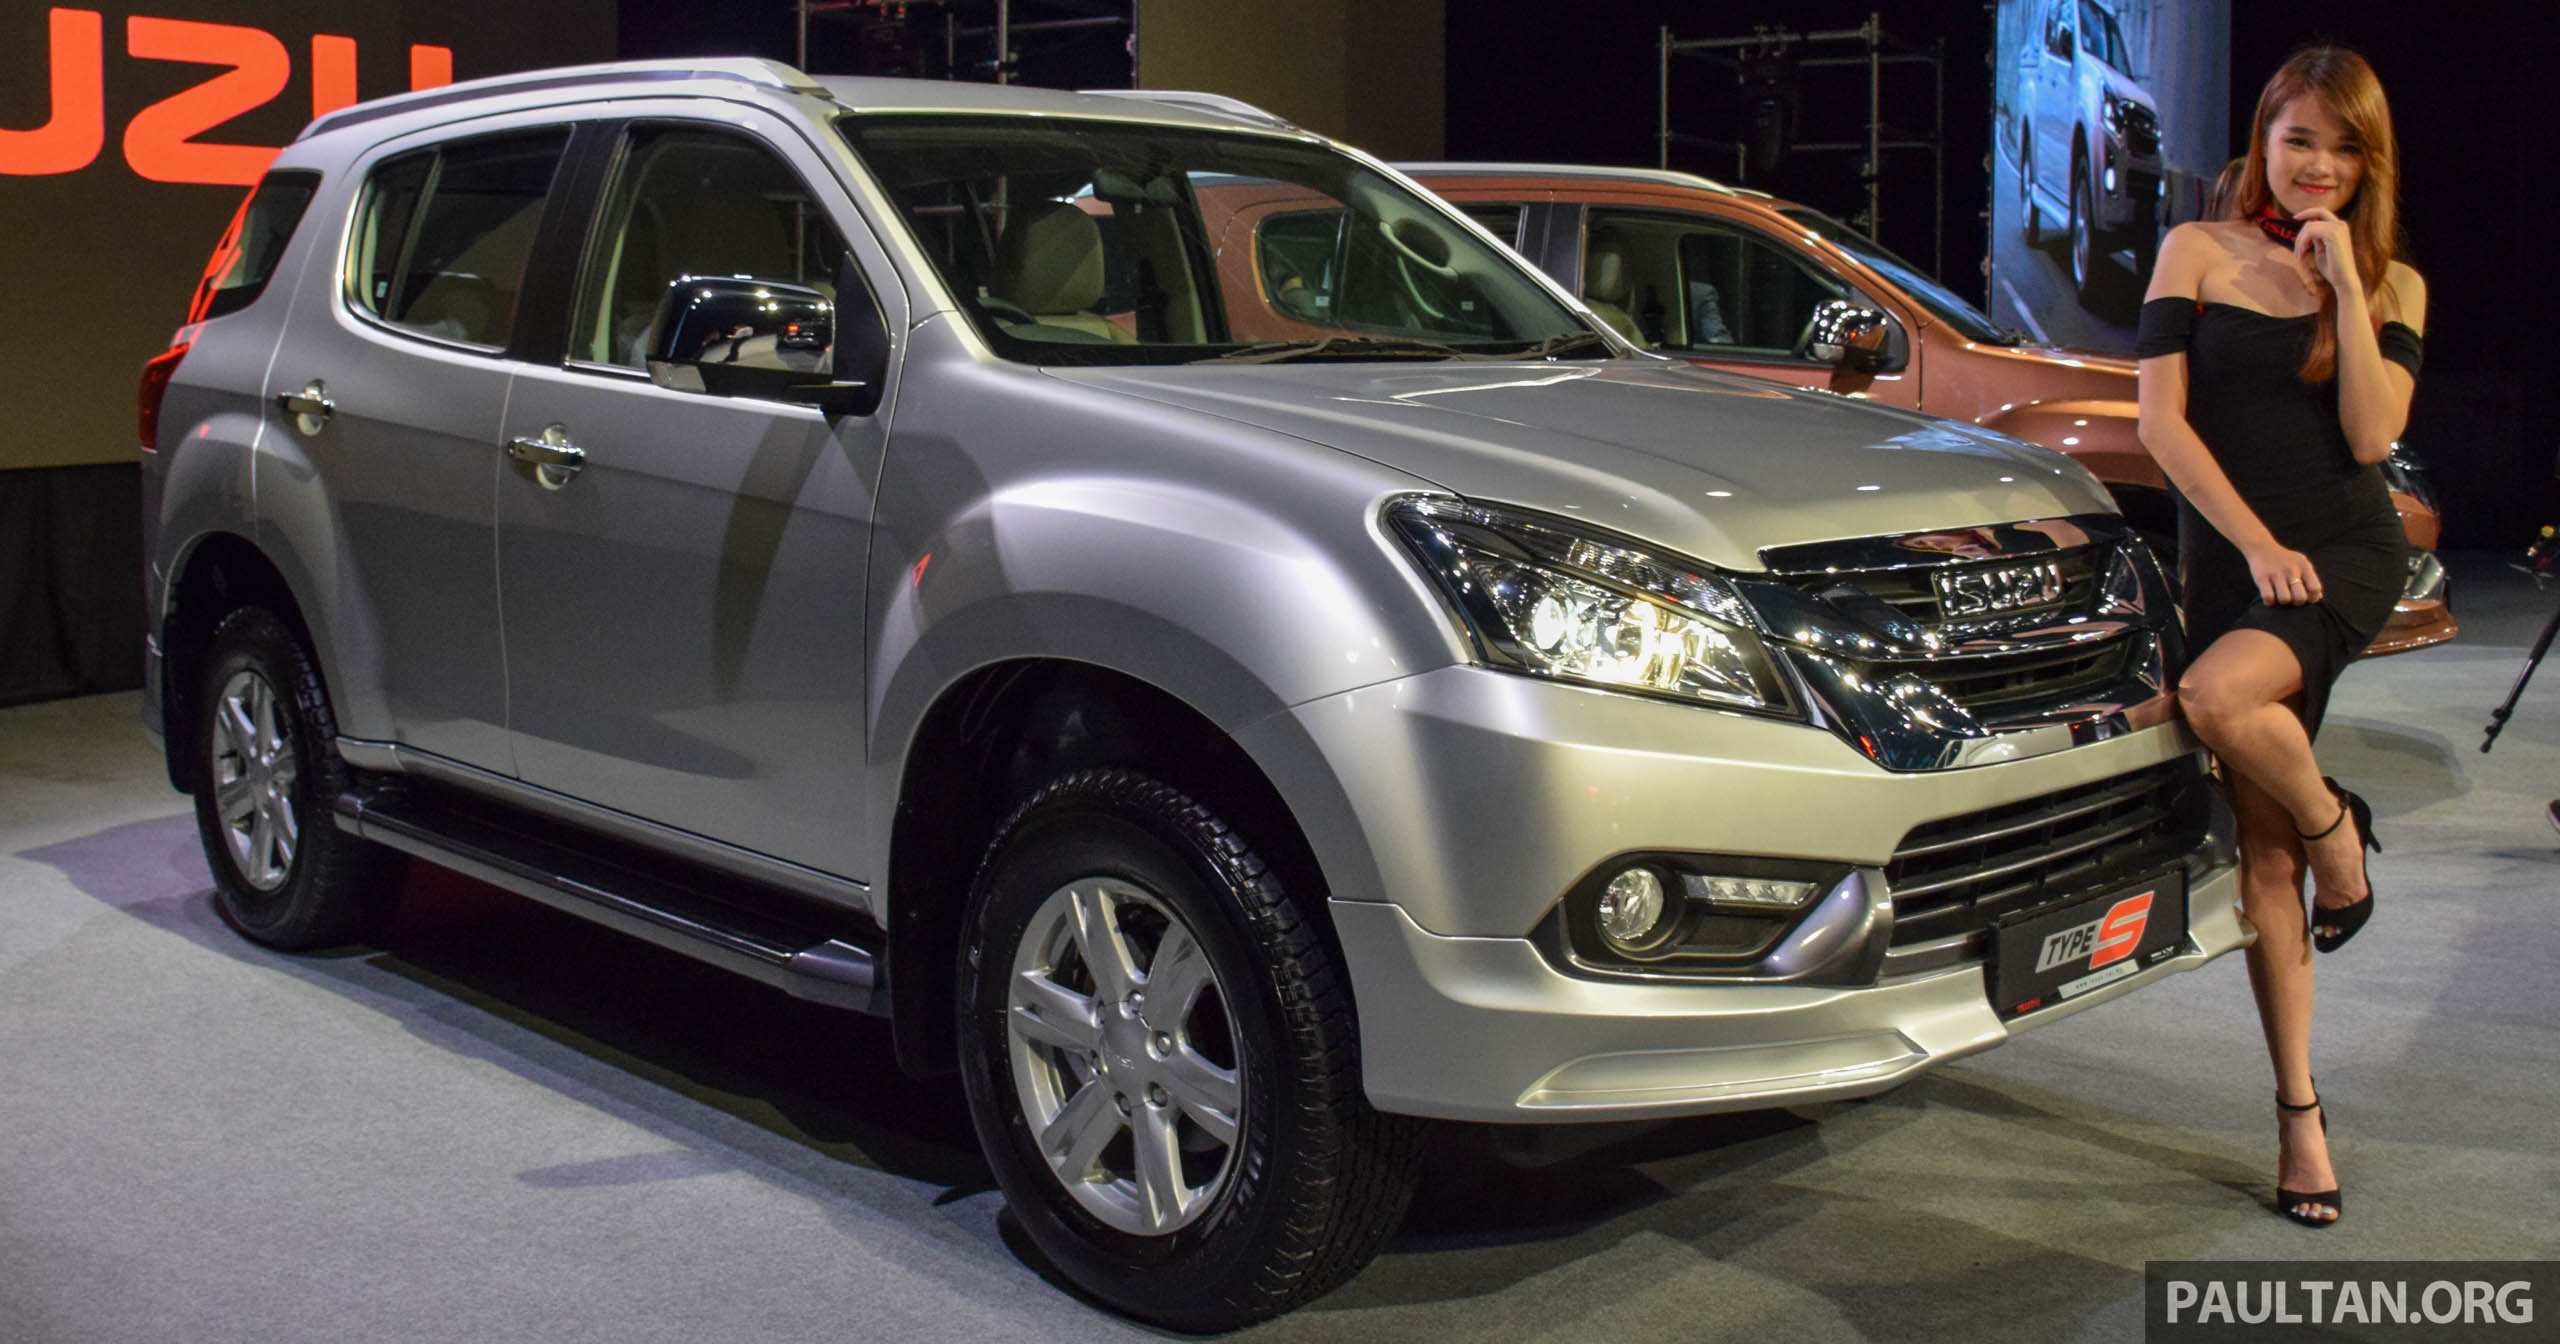 96 Gallery of 2020 Isuzu Mu X Pricing for 2020 Isuzu Mu X